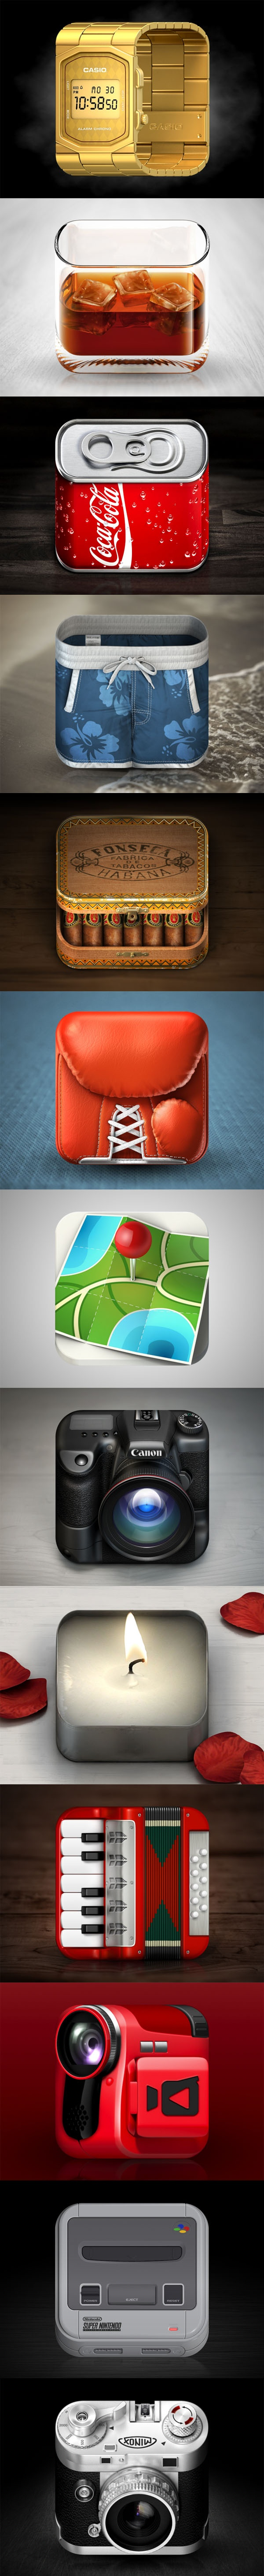 Konstantin Datz-iOS Icons  Collection of some iOS Icons i made in 2011 and 2012